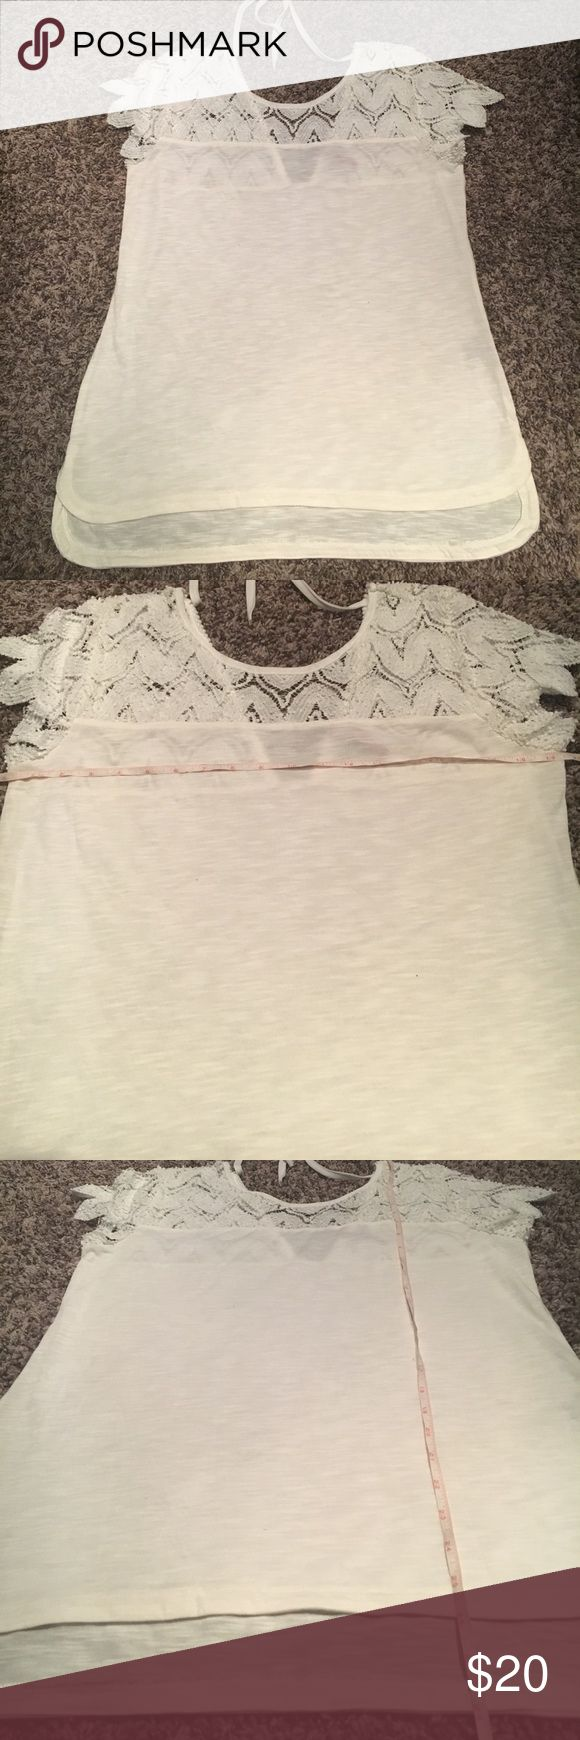 Laced sleeve Love Scarlett tee Gently worn, excellent condition, no flaws, smoke free. 🛍Open to reasonable offers ONLY please! I will not consider unreasonable offers that are half the asking price. No trades. No Modeling. And please keep in mind Poshmark sets the $6.49 flat rate shipping. Thank you!☺ Love Scarlett Tops Tees - Short Sleeve